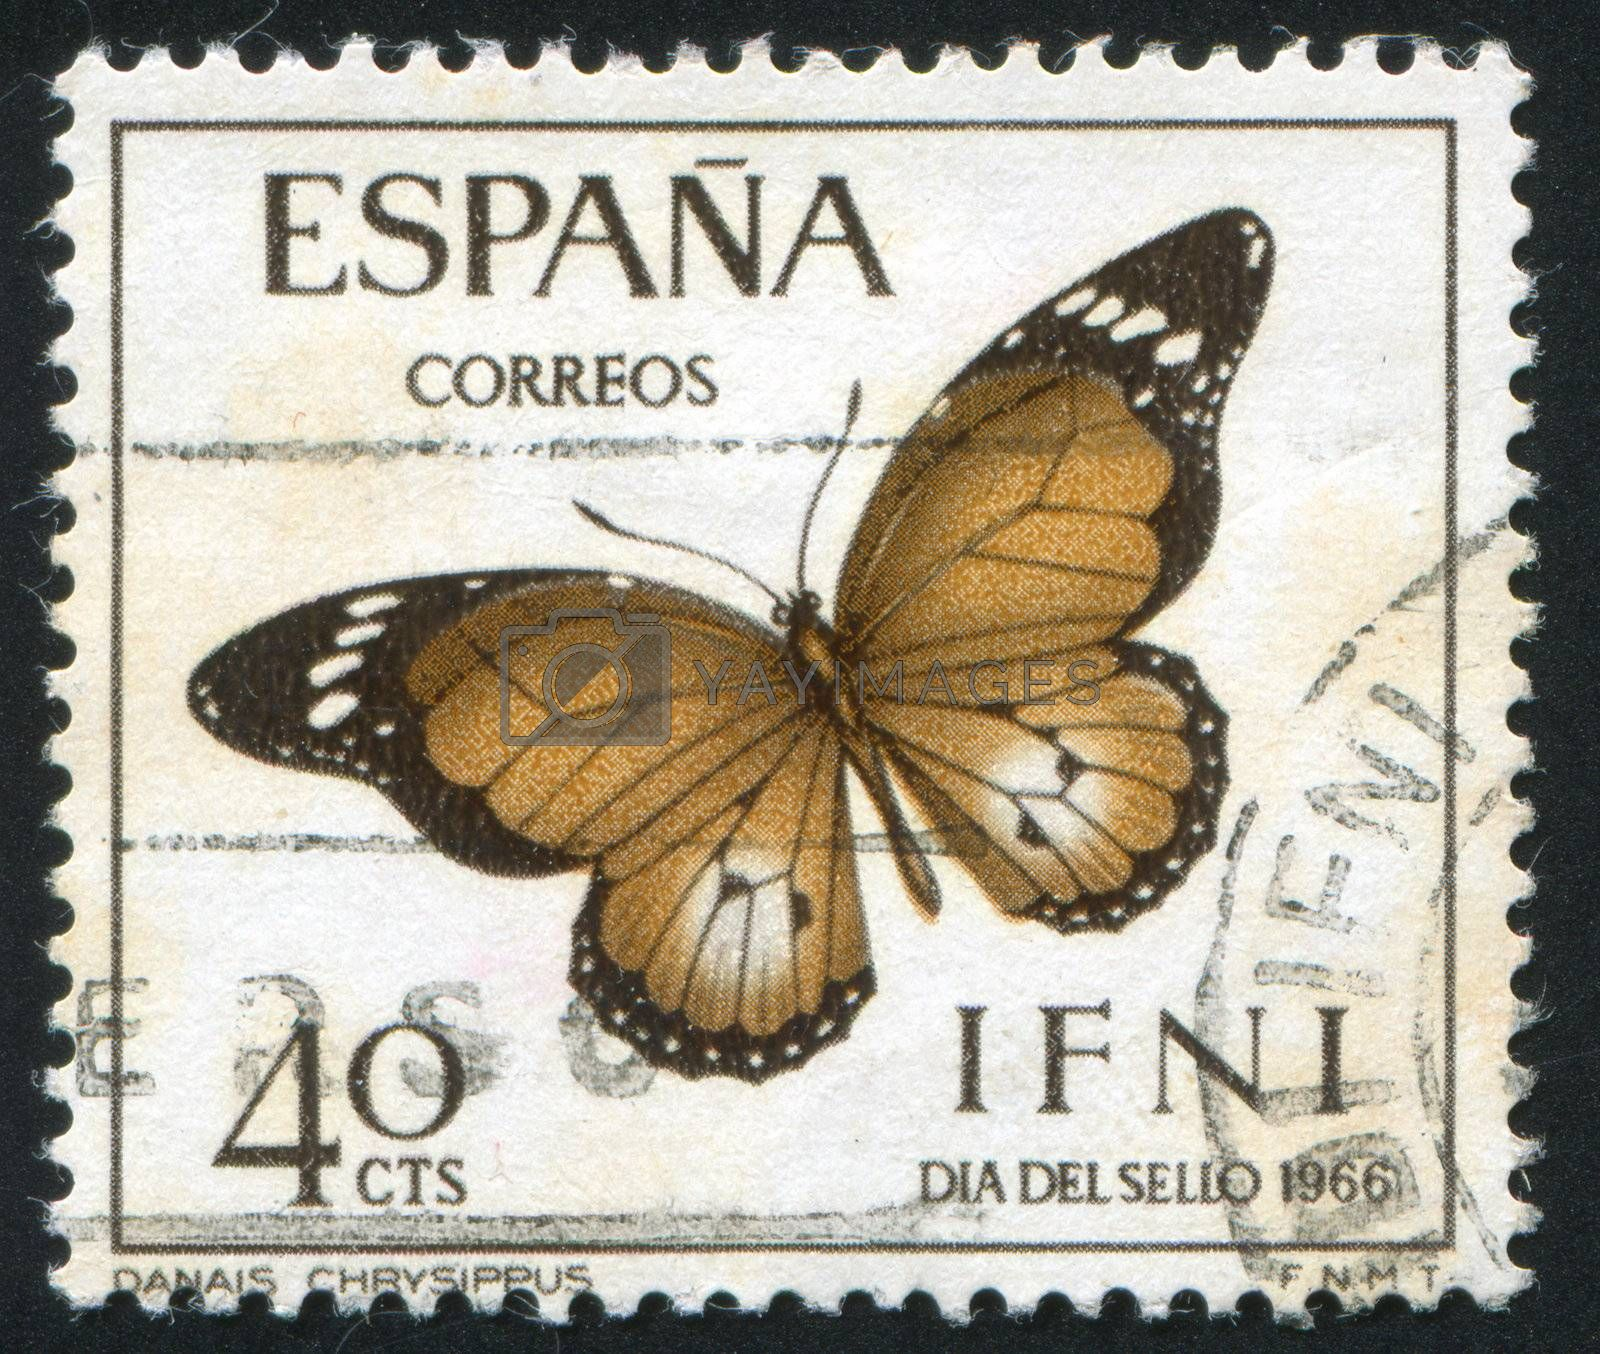 SPAIN - CIRCA 1966: stamp printed by Spain, shows butterfly, circa 1966.